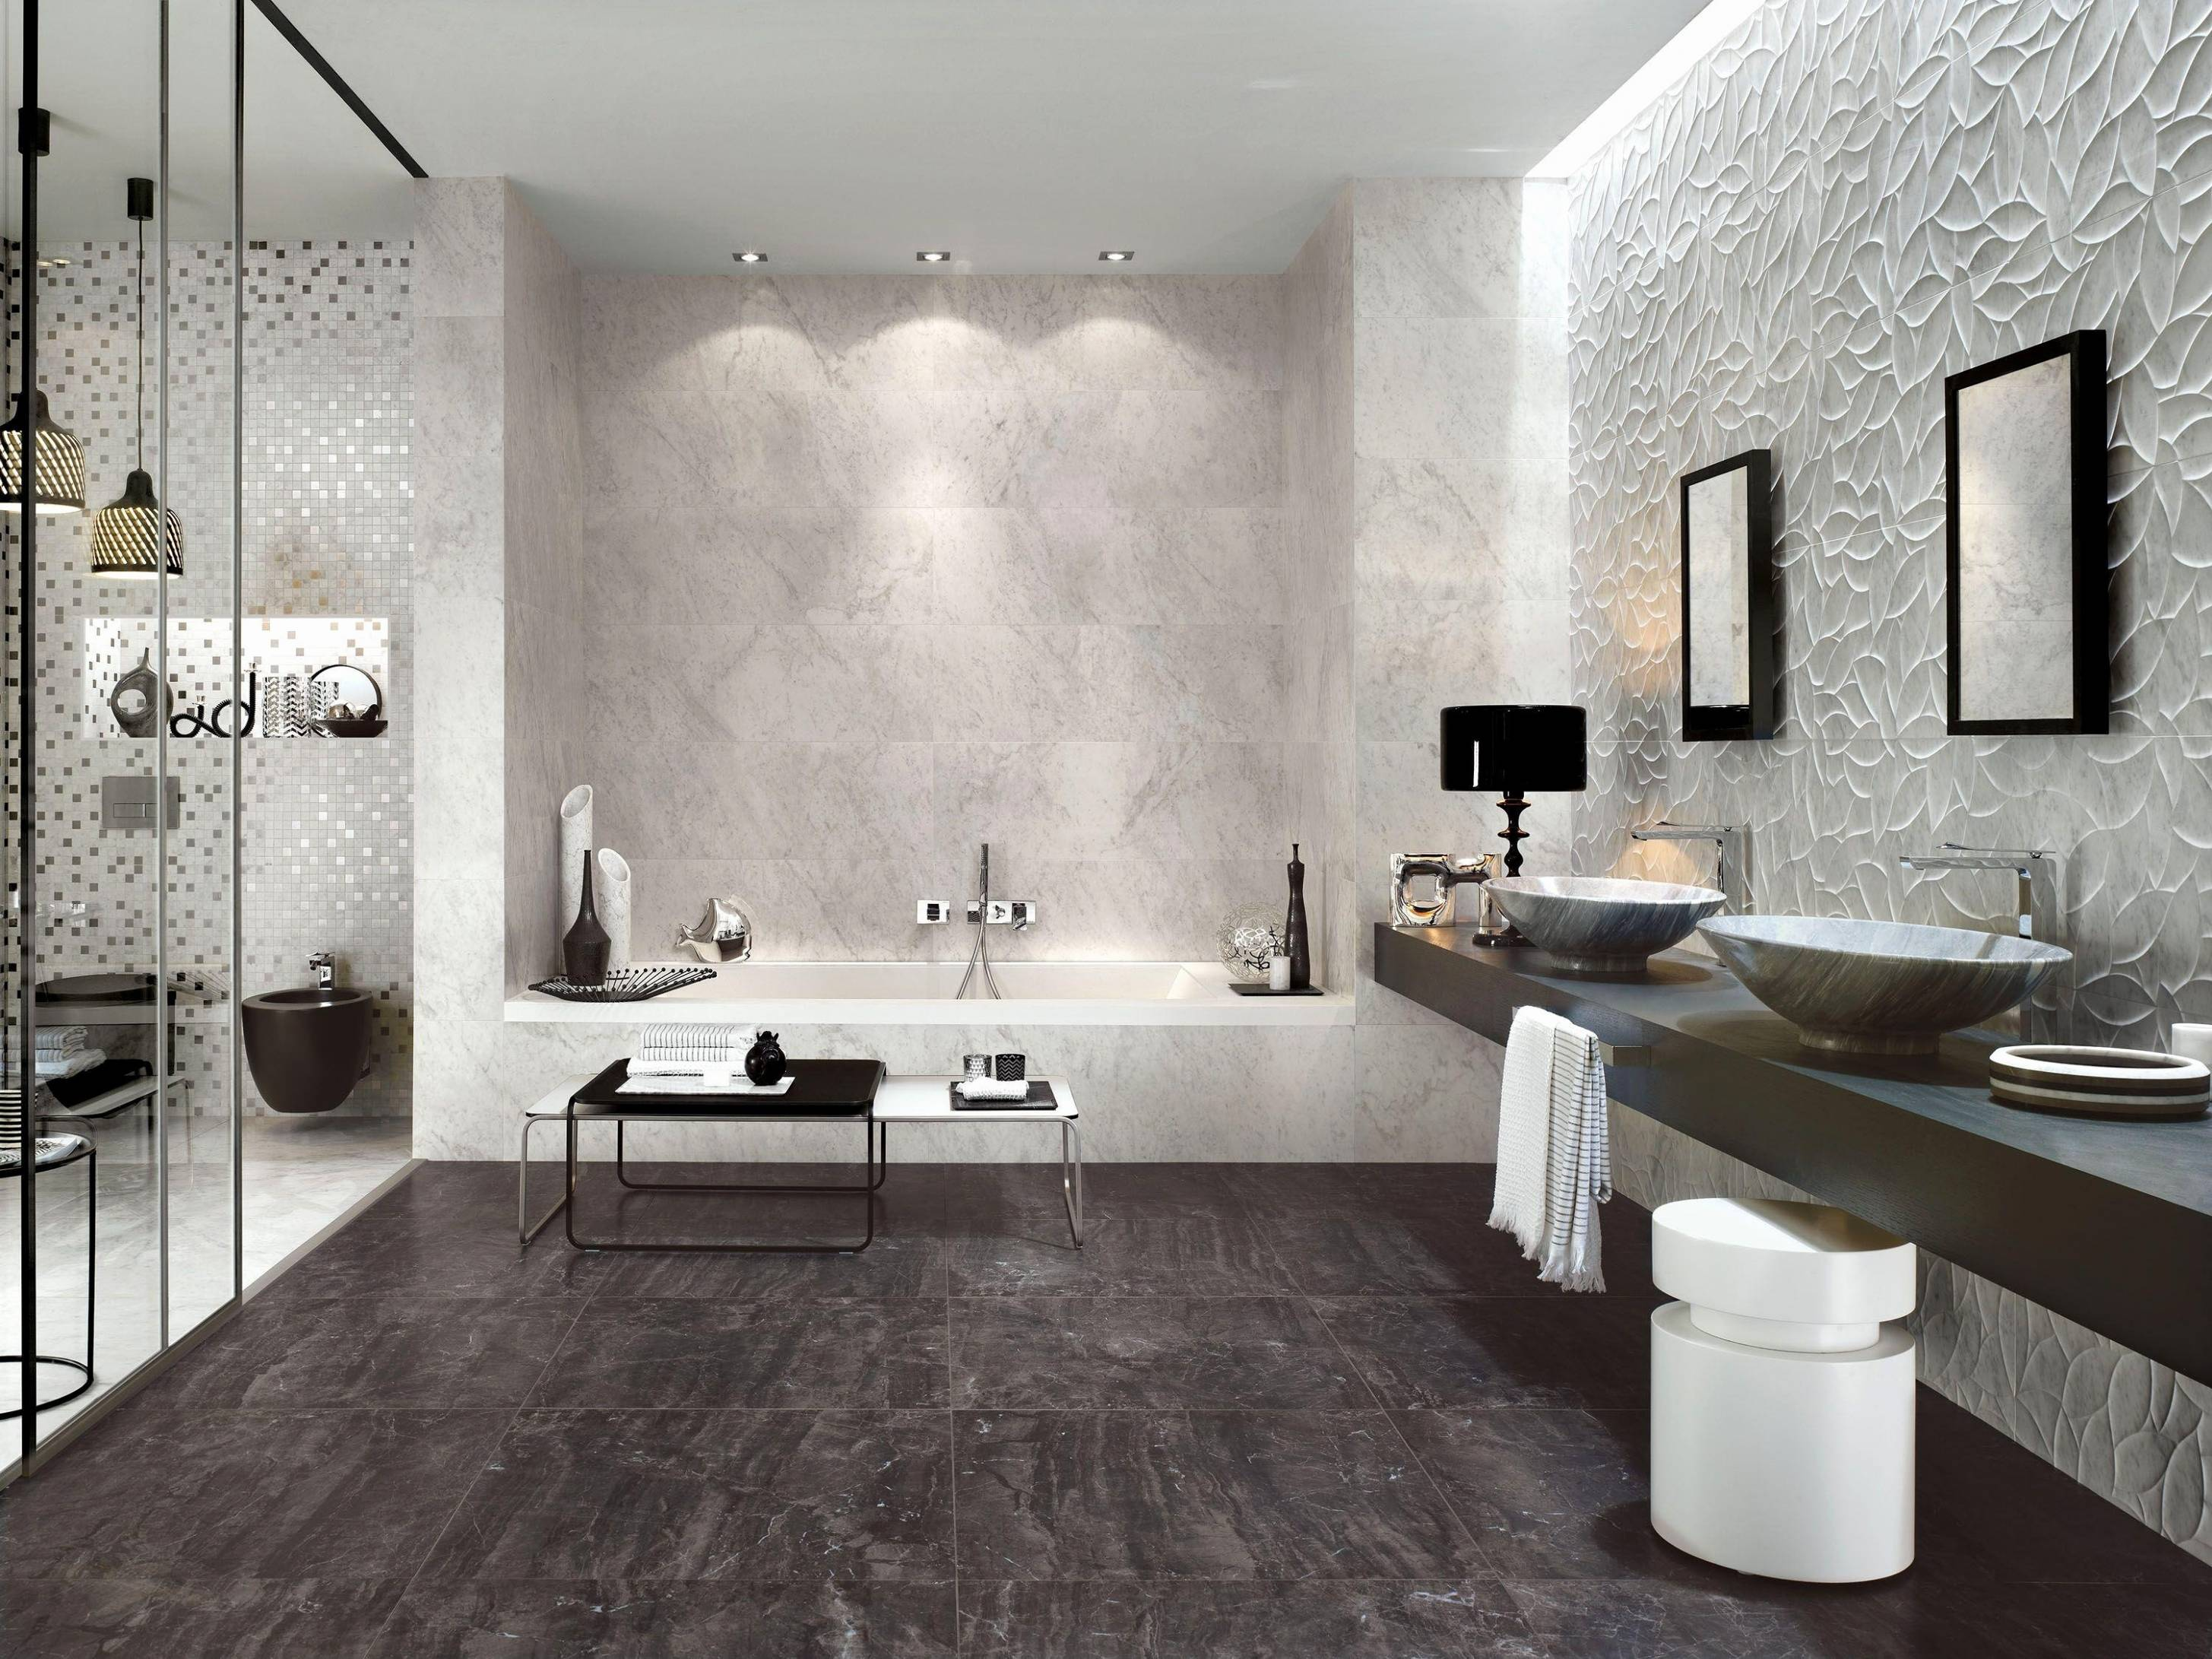 shower room ideas for small bathrooms lovely floor tiles mosaic bathroom 0d new bathroom floor tiles home of shower room ideas for small bathrooms